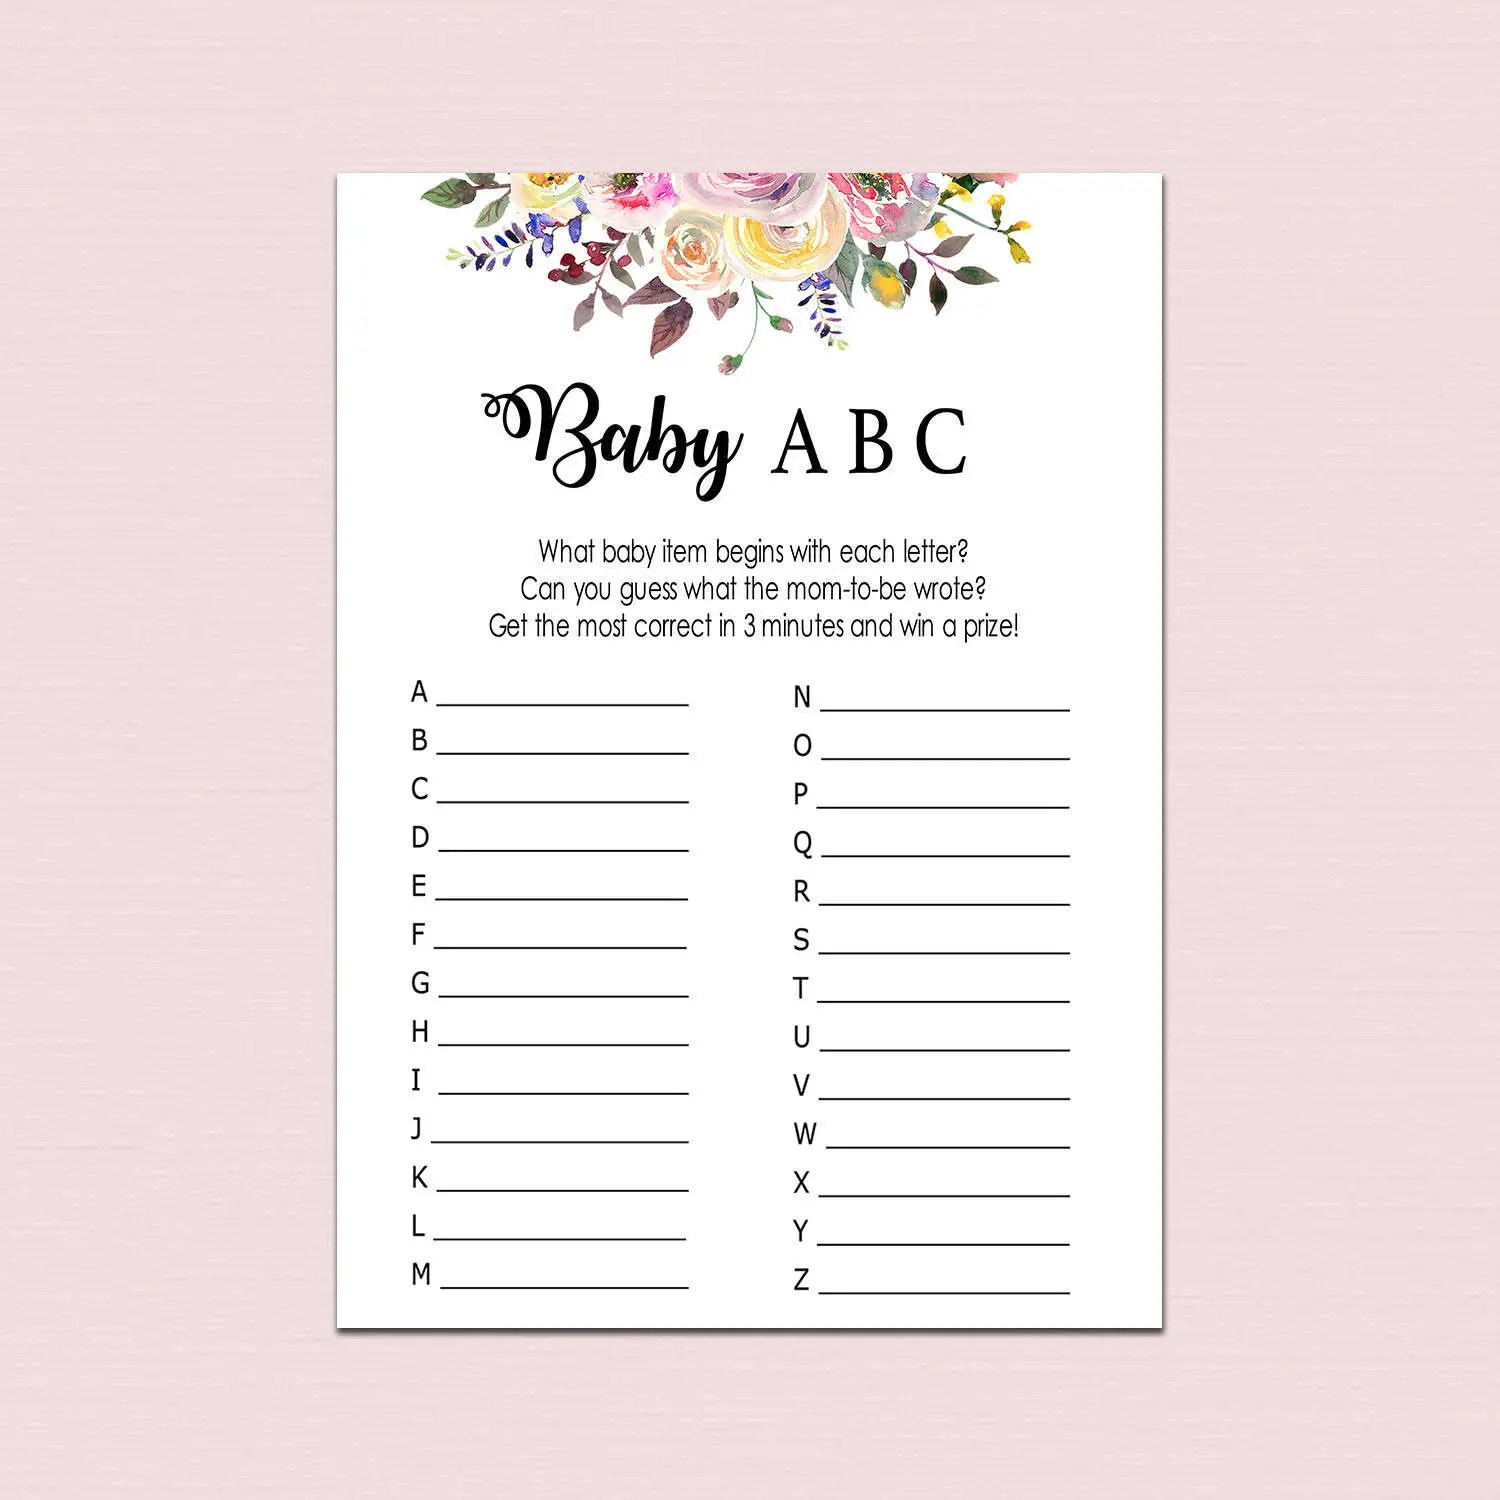 Floral BABY ABC GAME baby items game alphabet game Boho Etsy